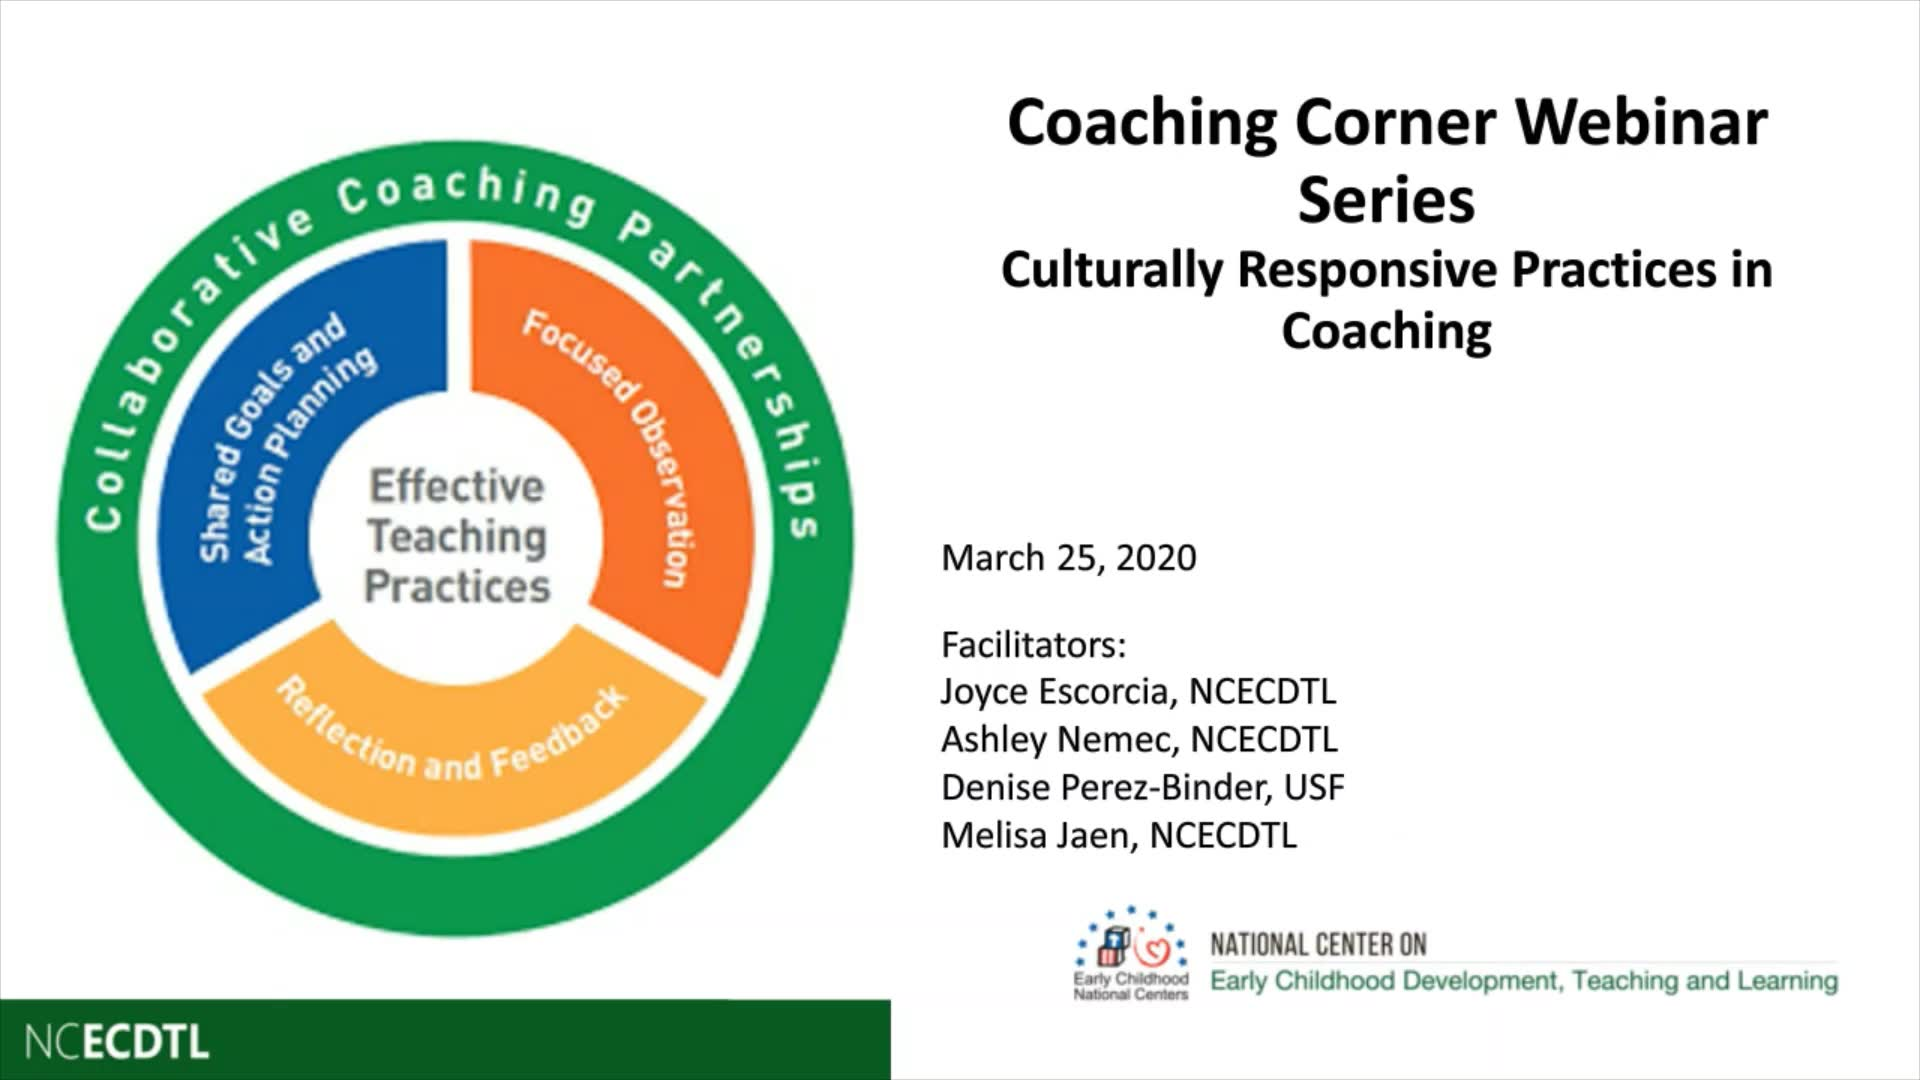 Culturally Responsive Practices in Coaching